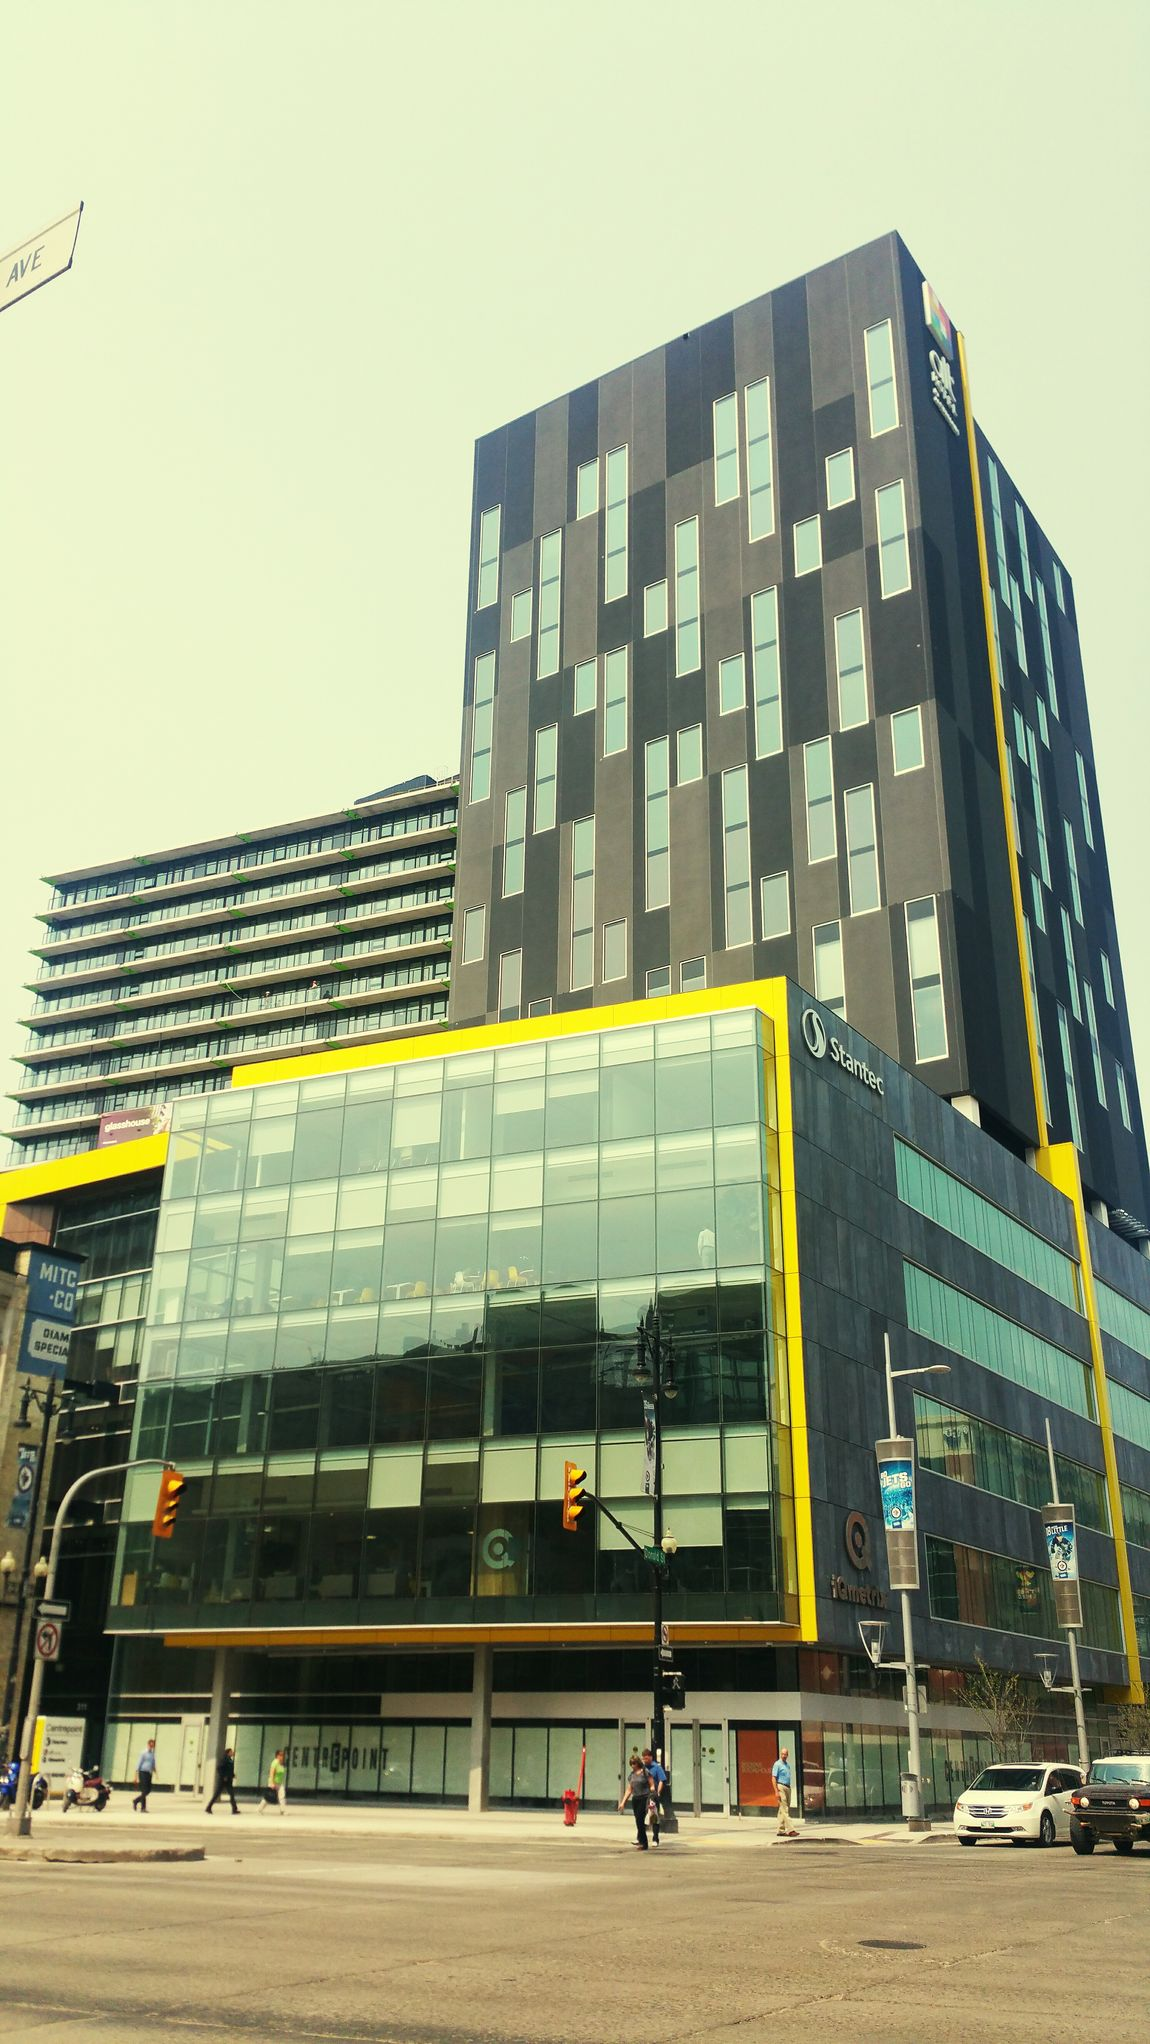 Taking A Walk On My Lunch Break through Downtown Winnipeg . Our Cityscape is Evolving . Evolving City Modern Architecture .